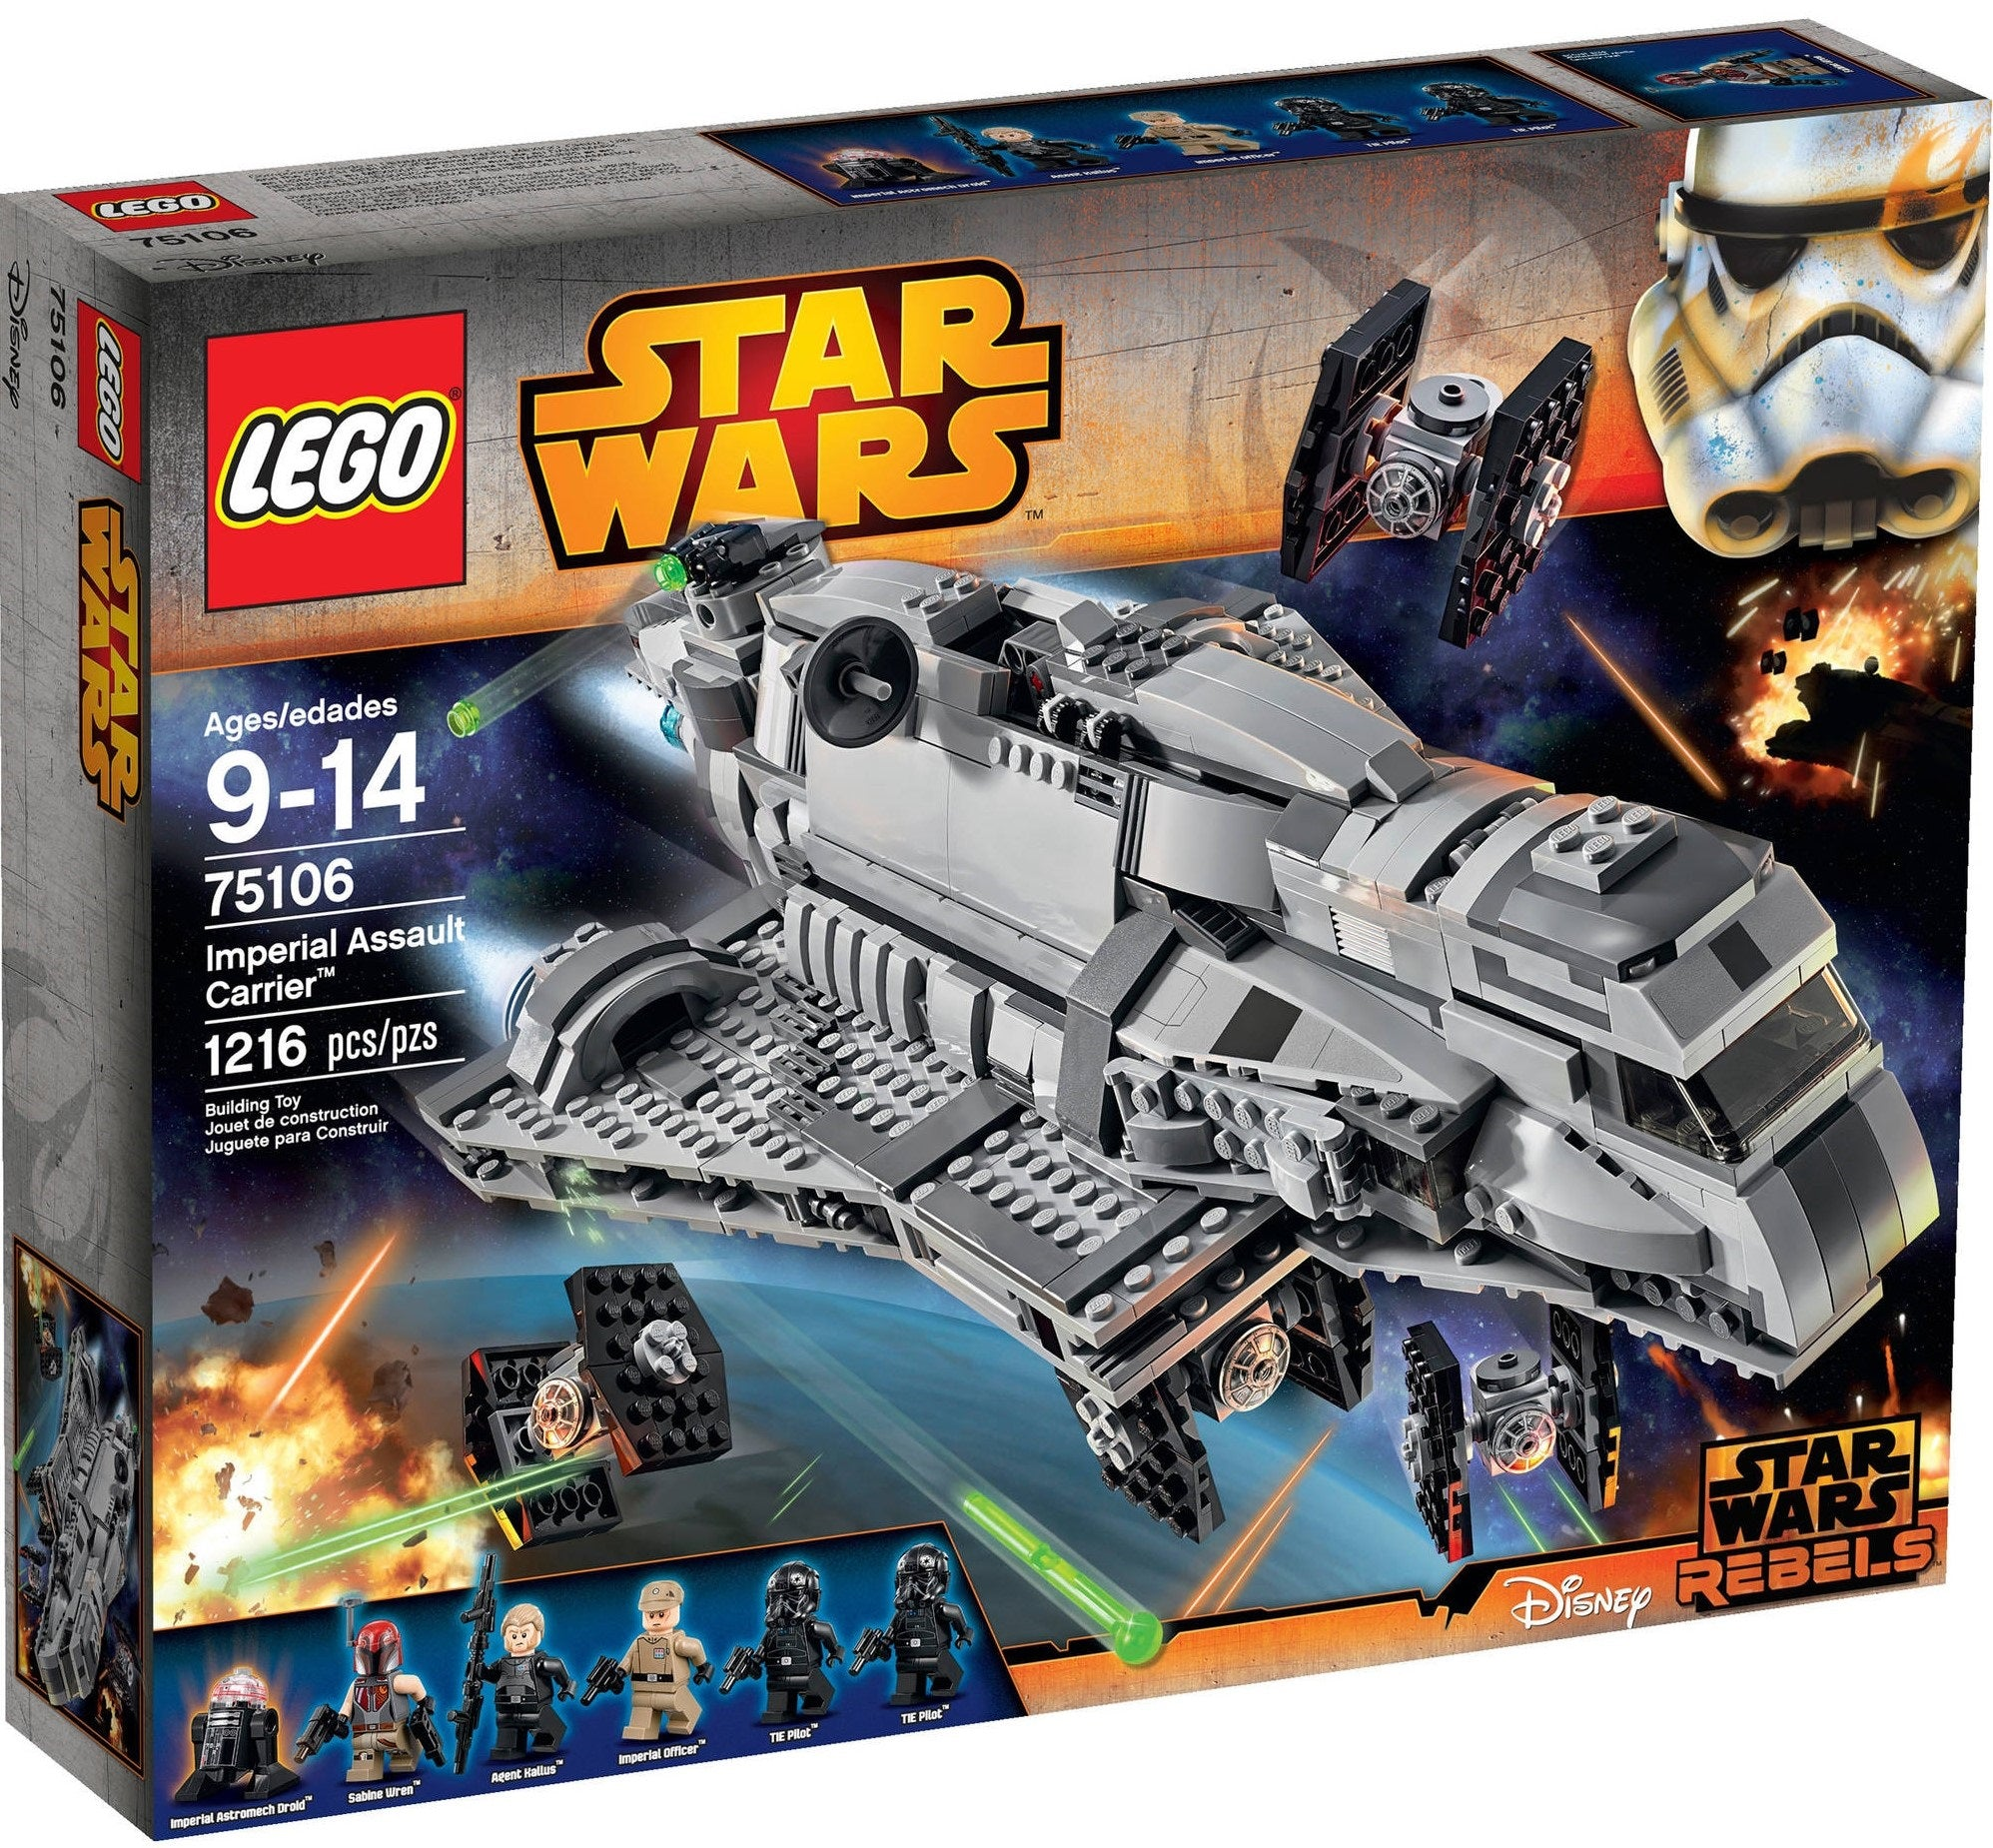 LEGO - Star Wars Rebels - Imperial Assault Carrier + 4 Mini TIE Fighters + 7 Minifigures (75106)